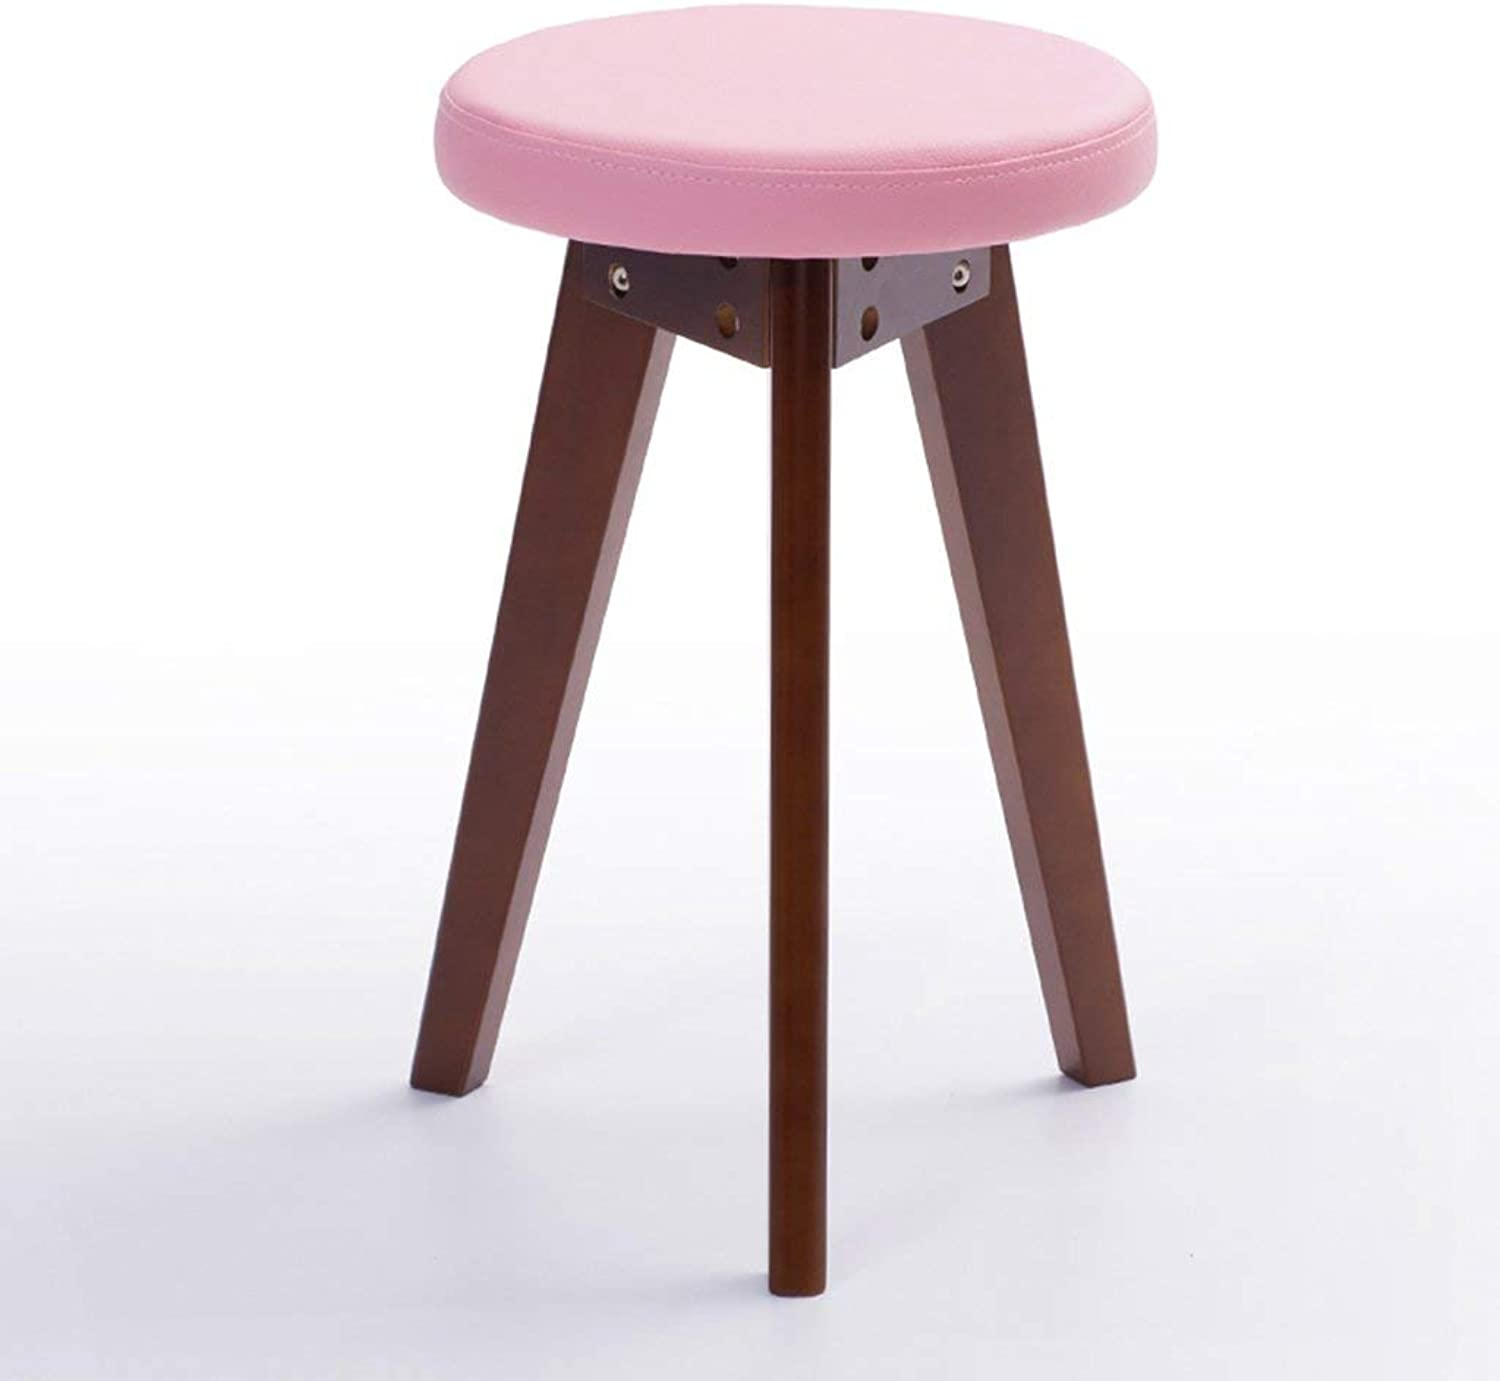 JZX Practical Chair Stool, Solid Wood Fashion Compact Lightweight Durable Stable Round Stool,The Best Choice for a Restaurant Cafe Lounge